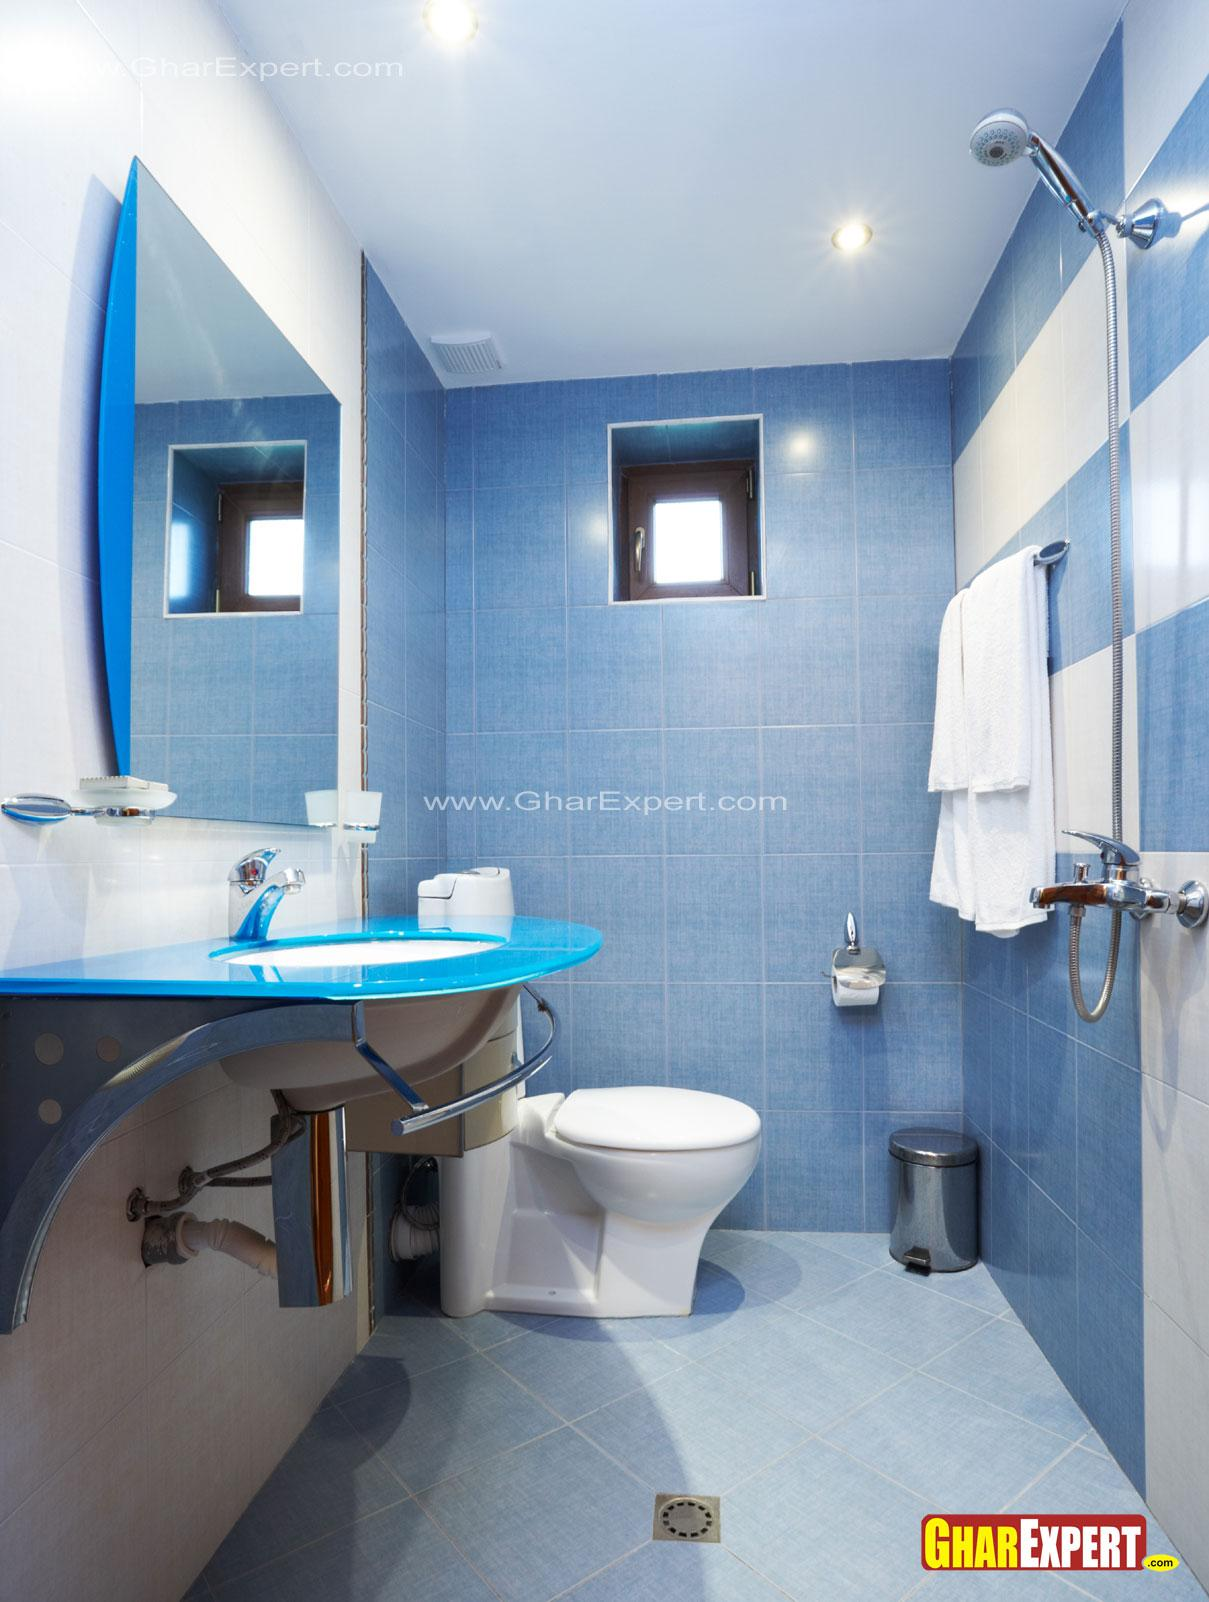 5 by 9 ft bathroom in blue col....